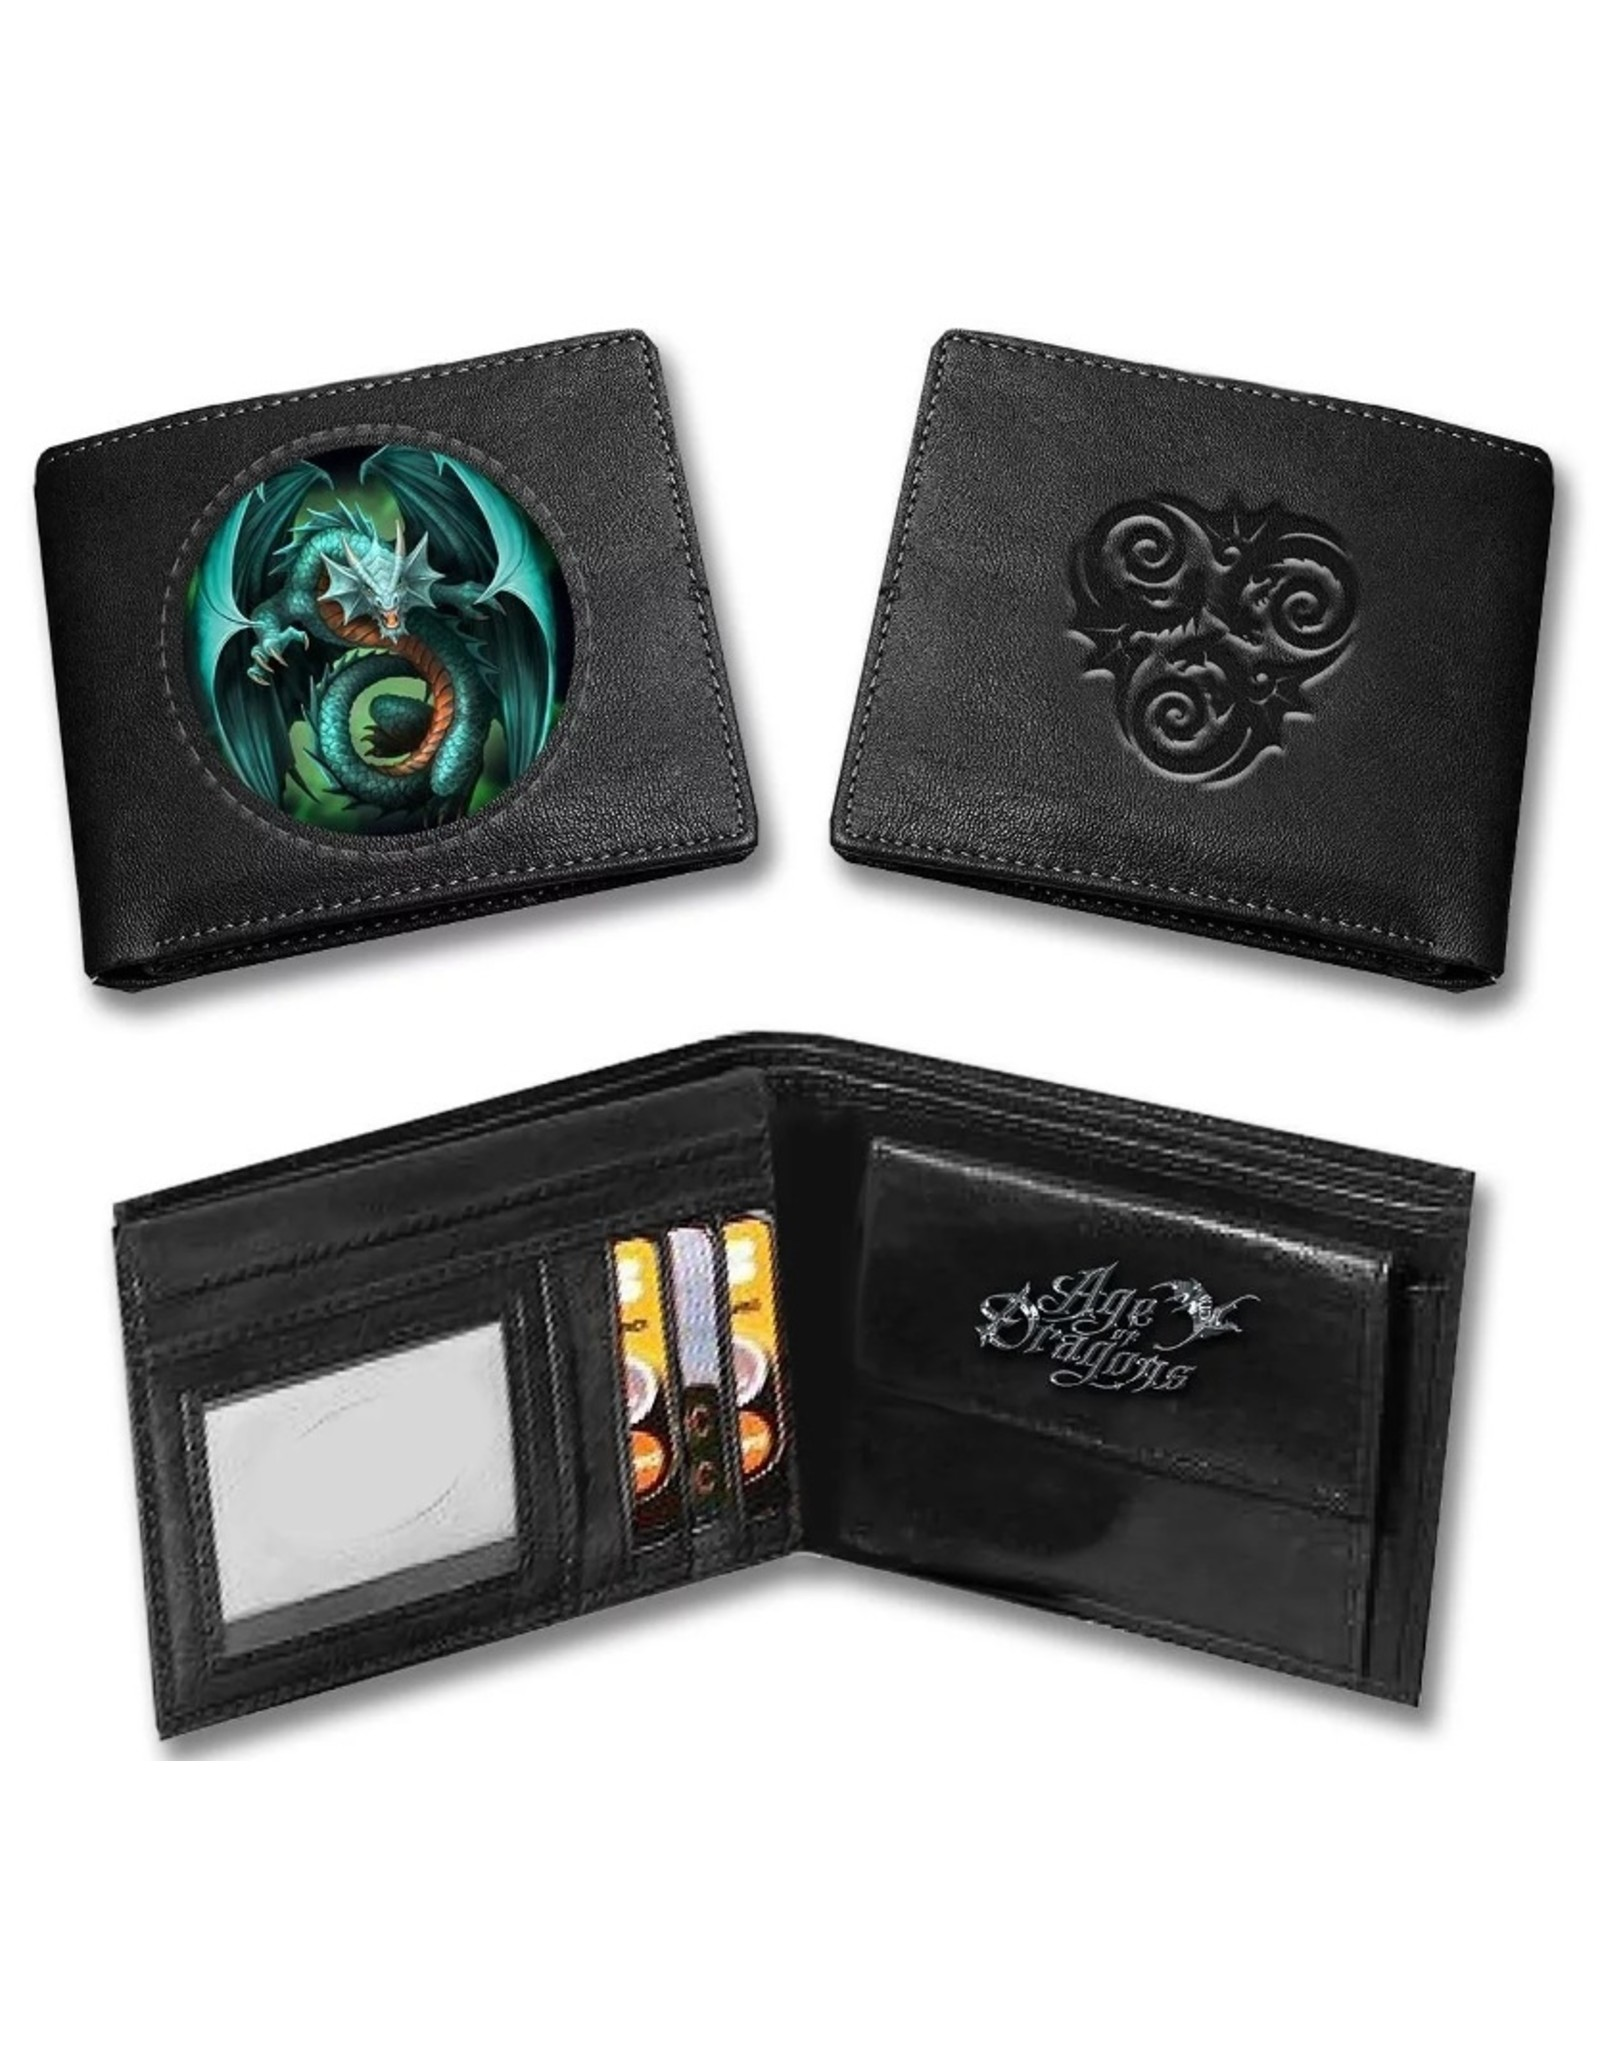 Anne Stokes Fantasy bags and wallets - Anne Stokes 3D lenticular wallet Fire Breather (Age of Dragons)